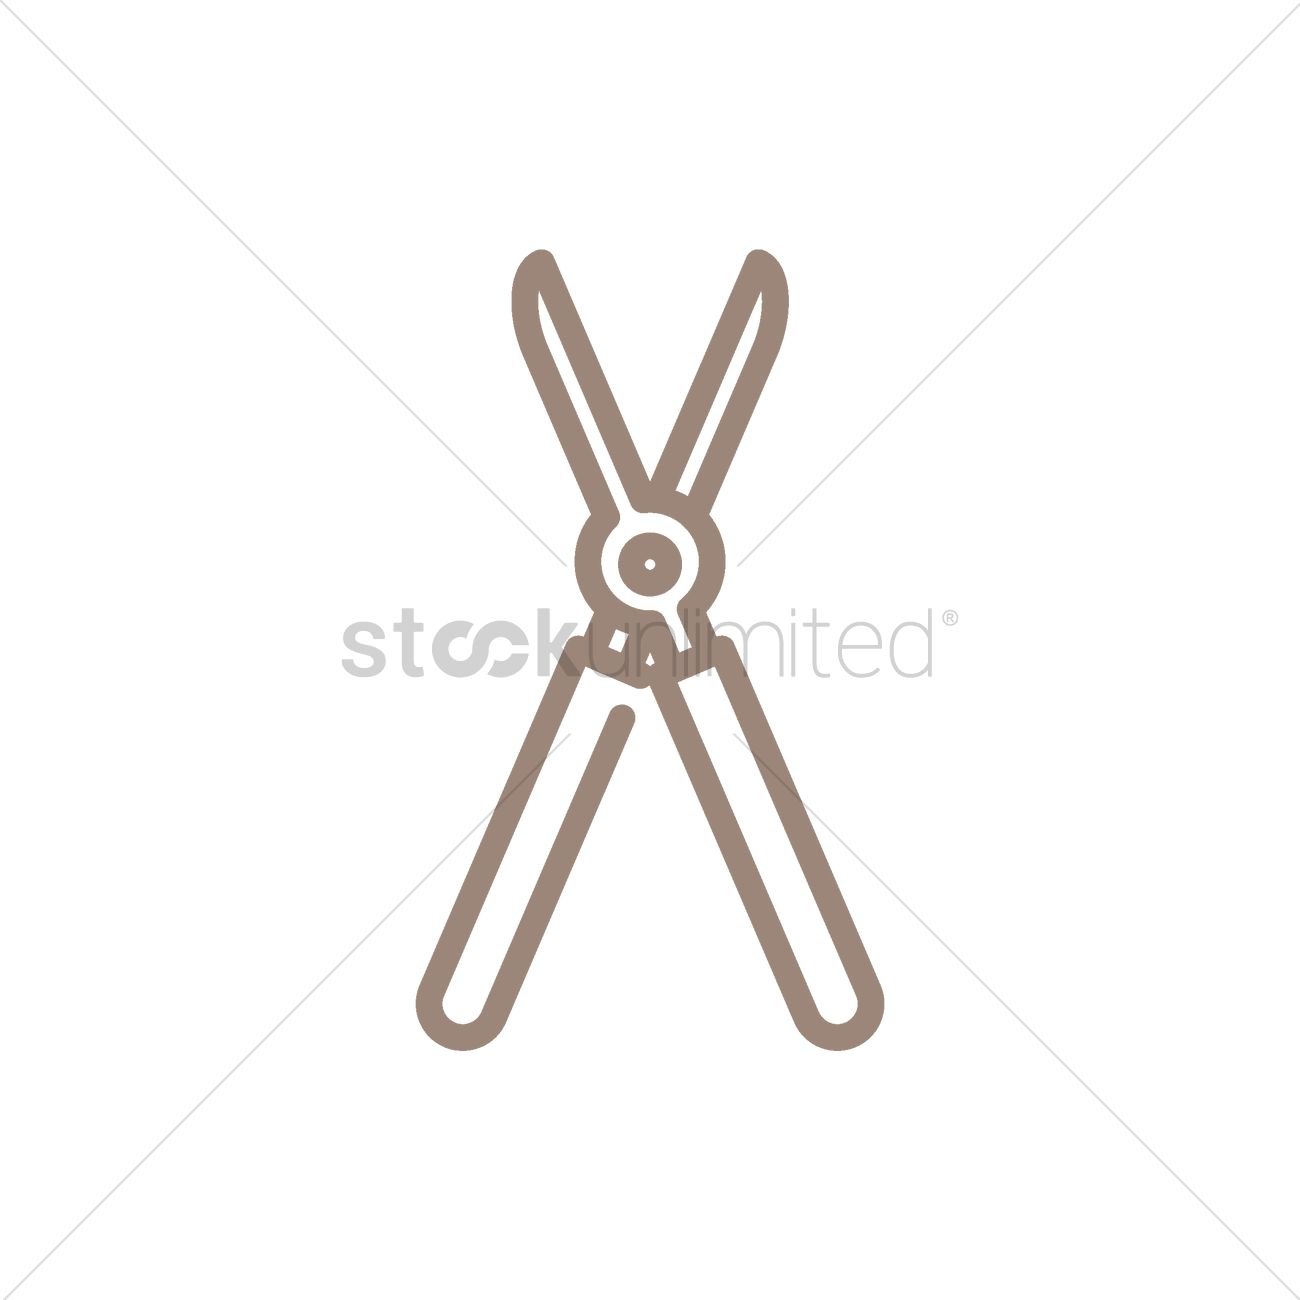 Garden clippers Vector Image 1942224 StockUnlimited